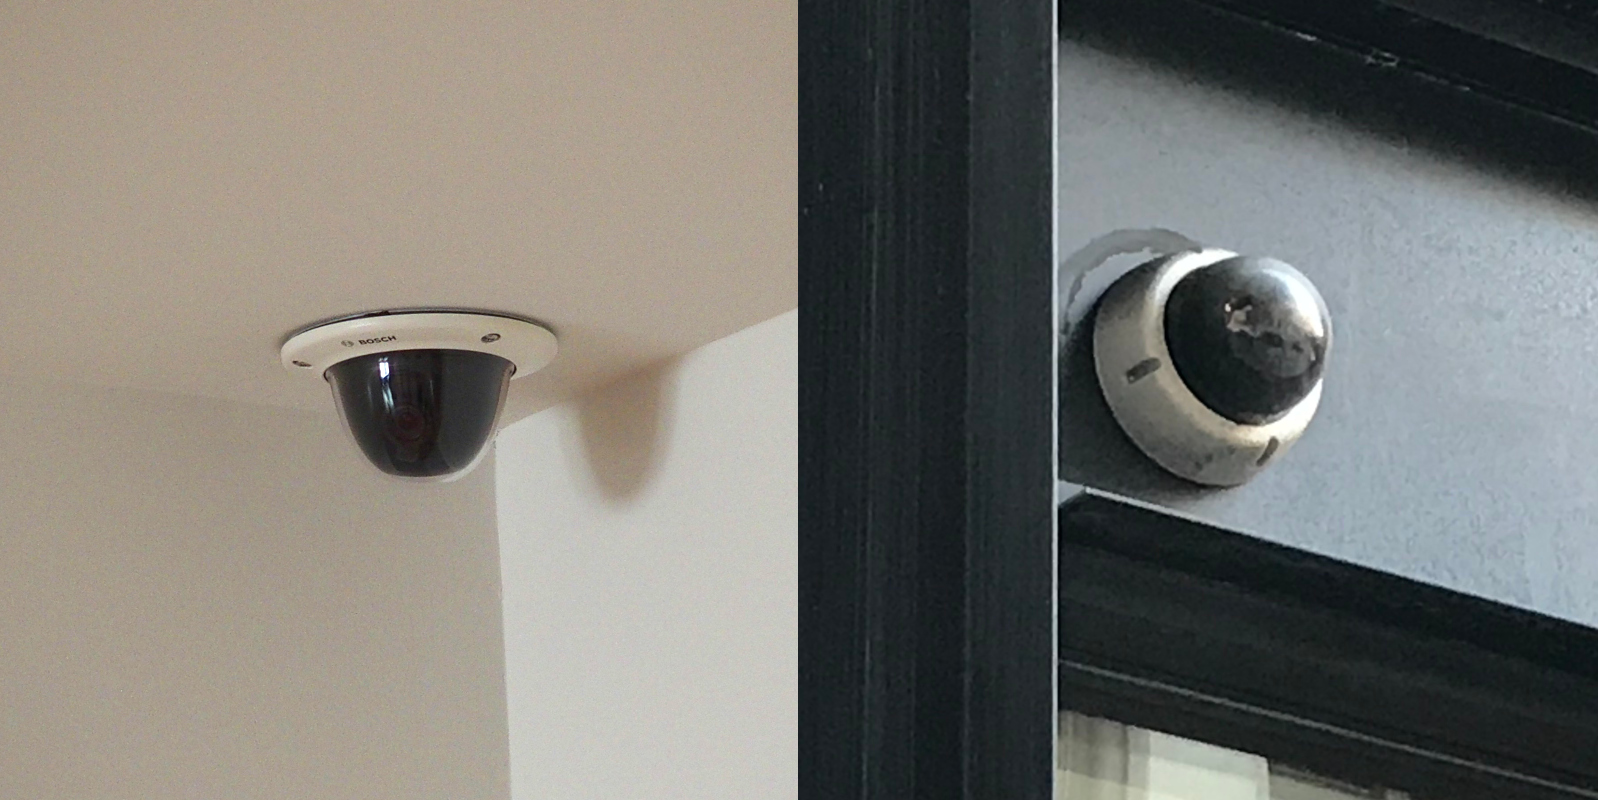 An indoor and an outdoor dome camera